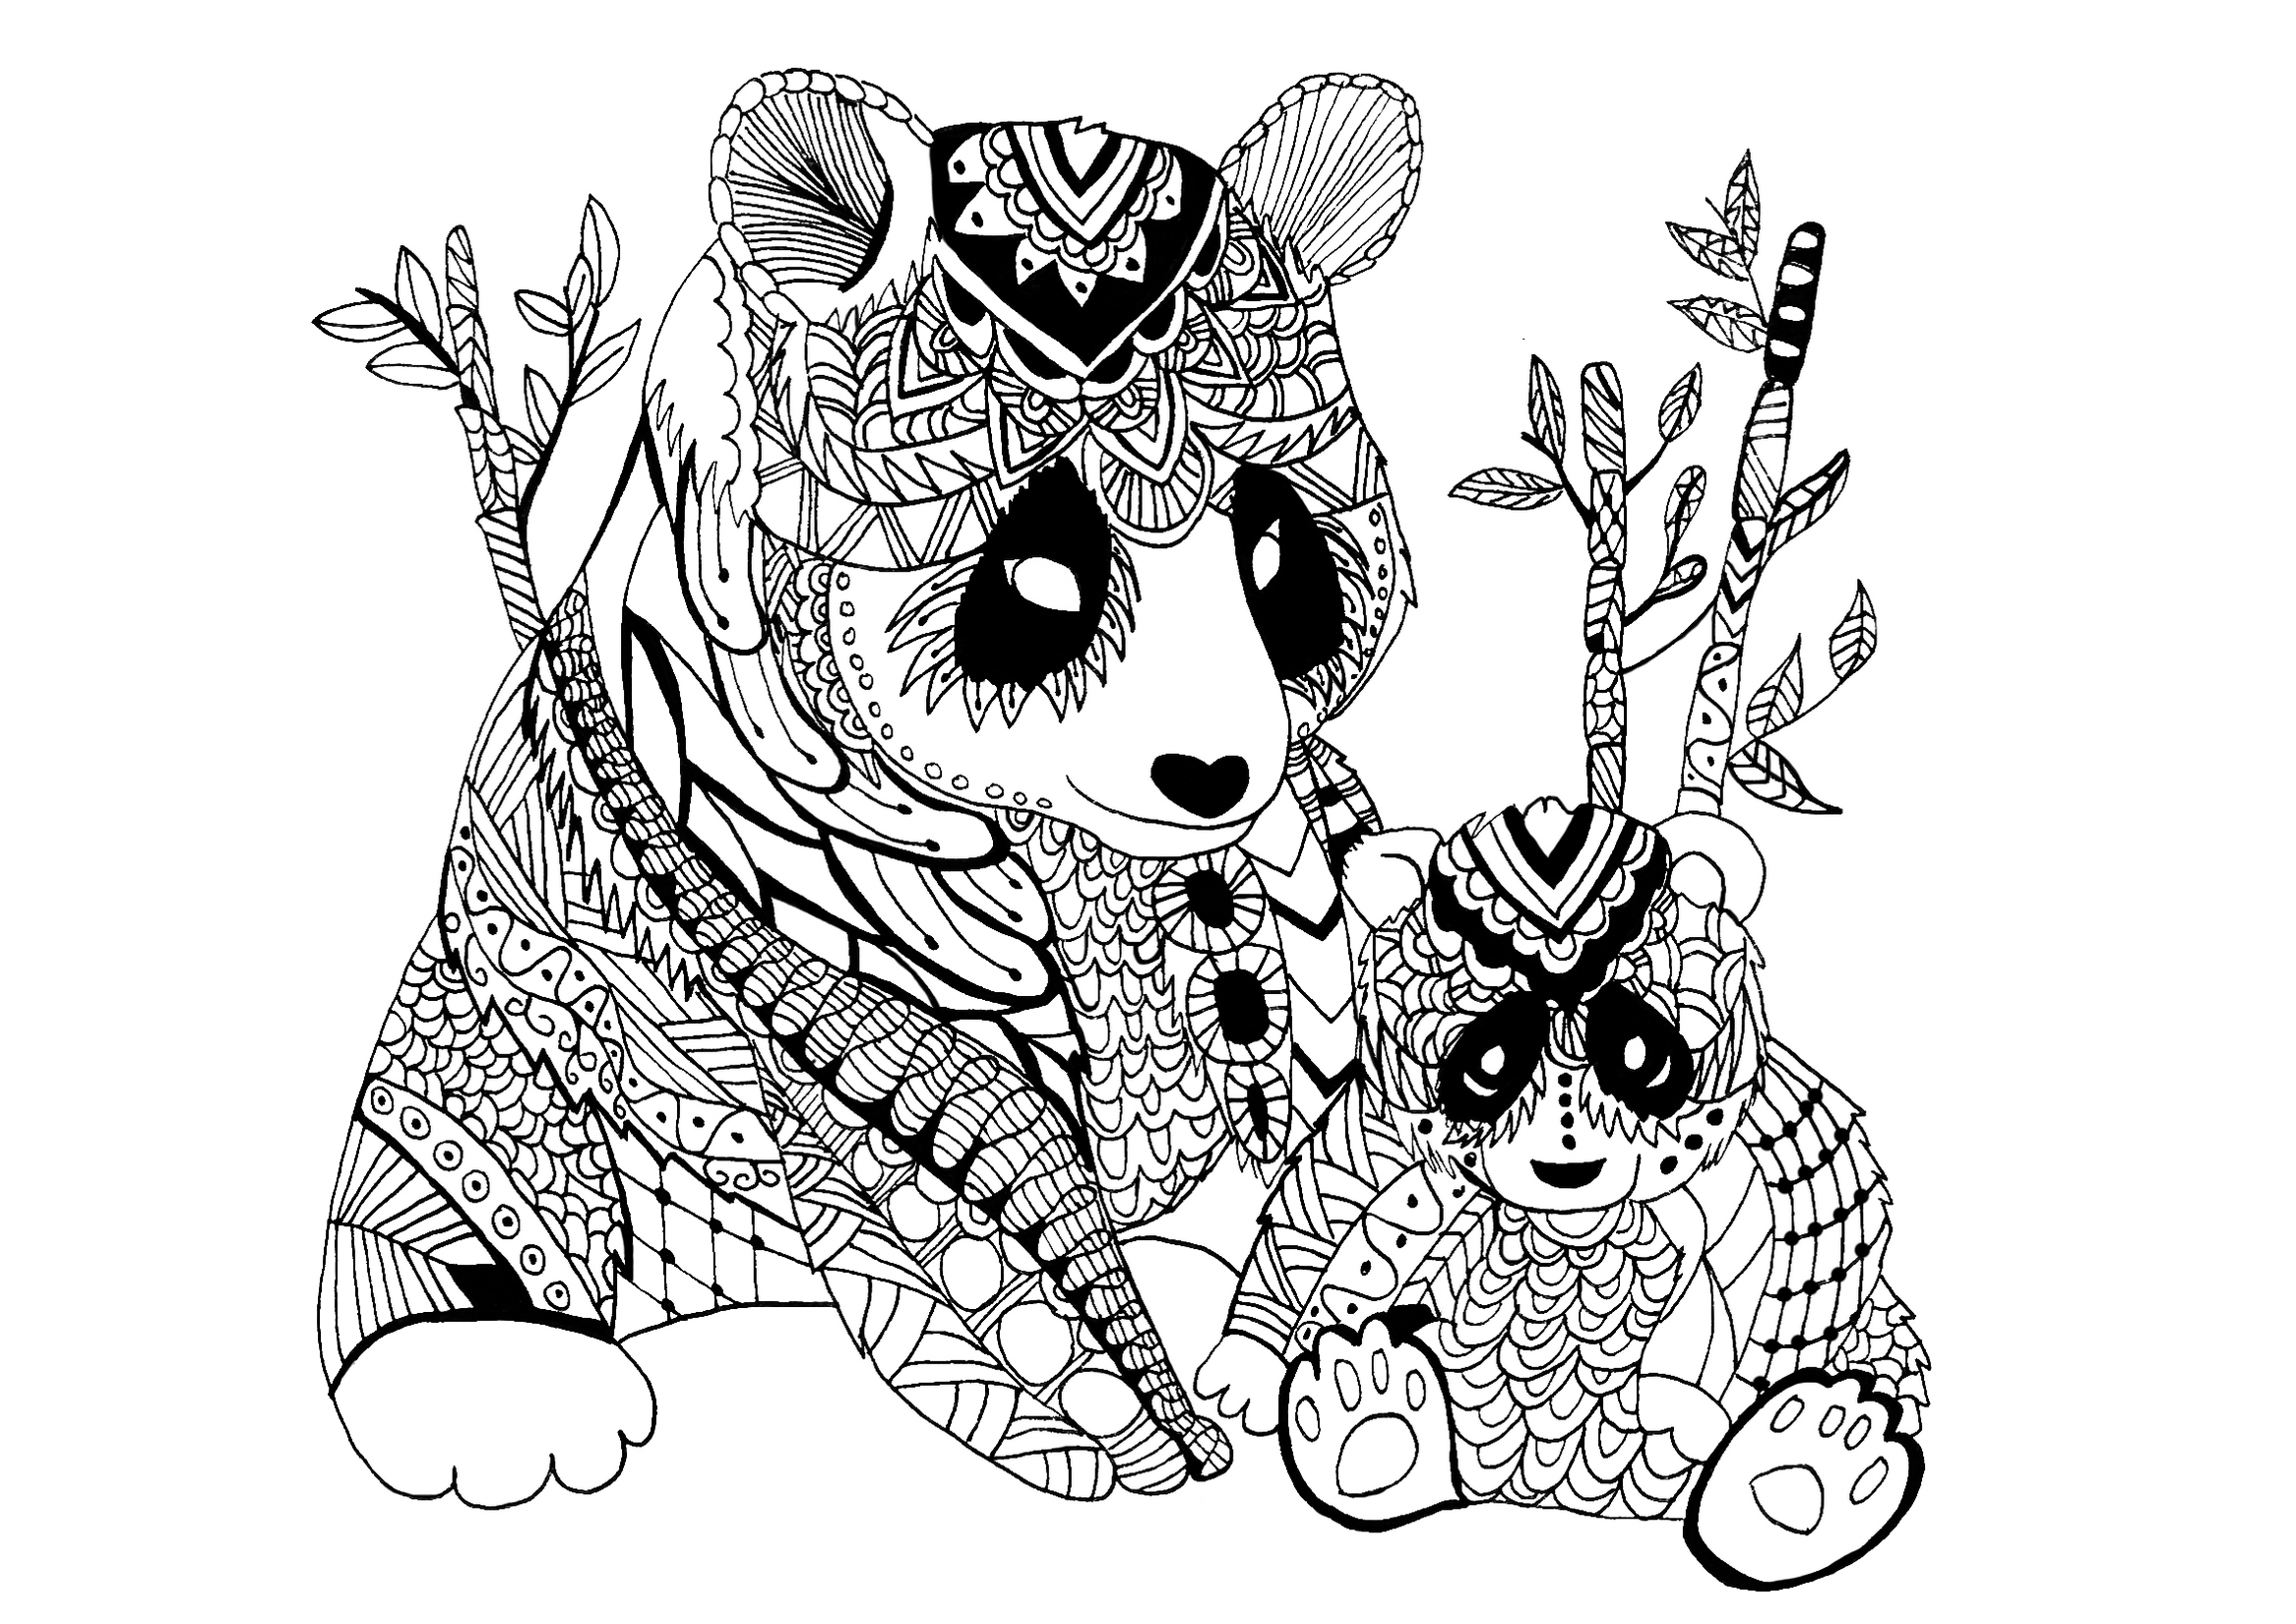 panda-and-baby-zentangle-coloring-picture